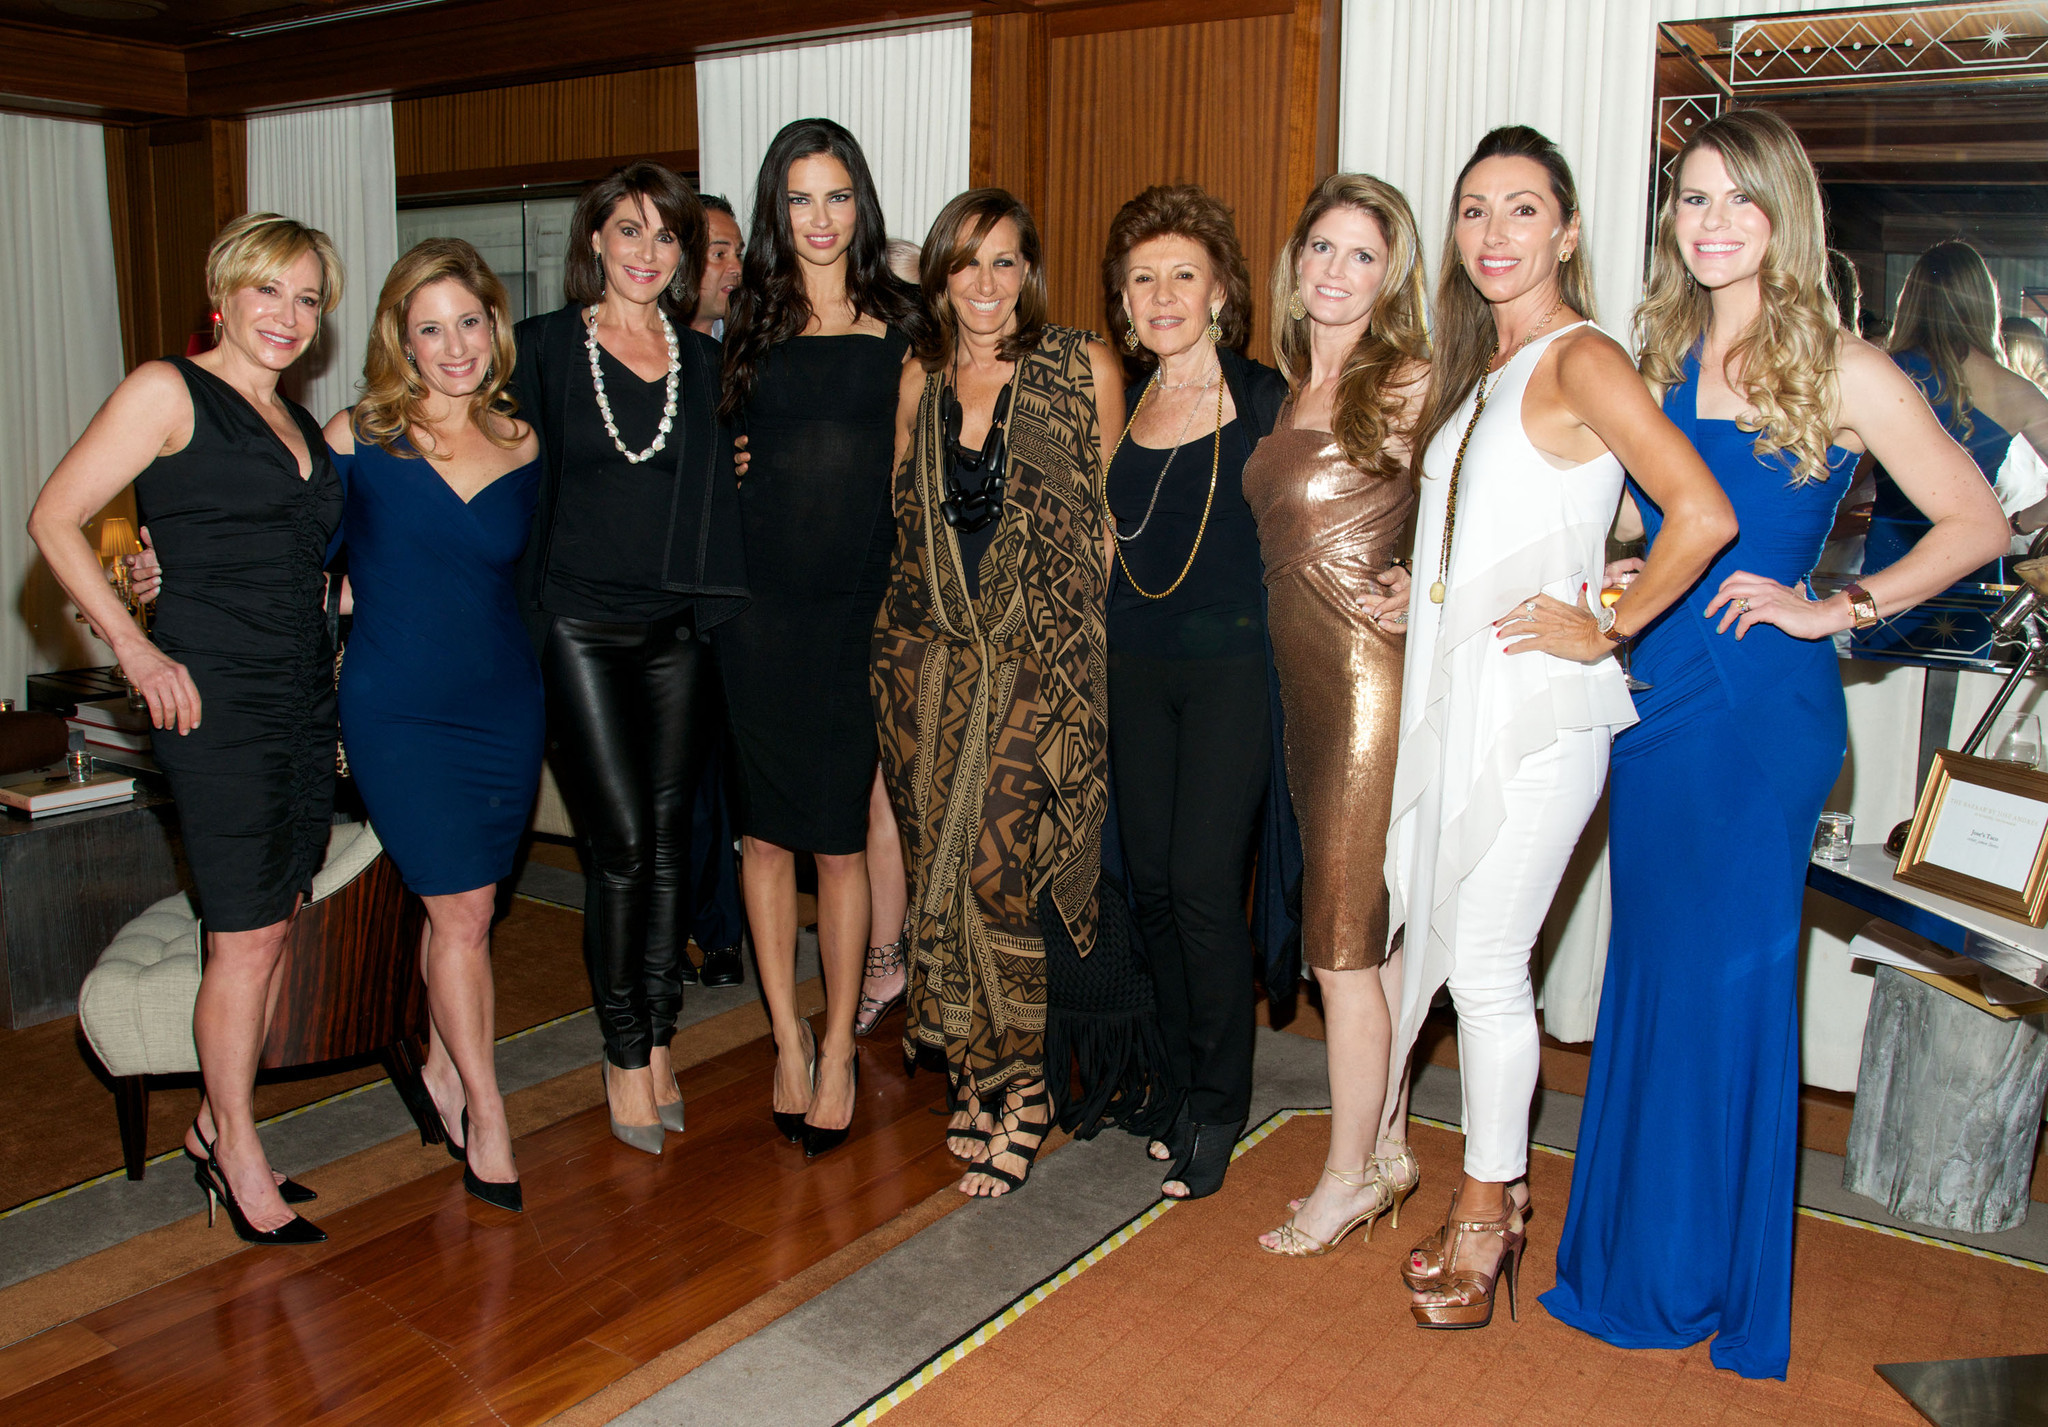 Society Scene photos - Donna Karan Fashion Show co-hosted by Women of Tomorrow at SLS Hotel